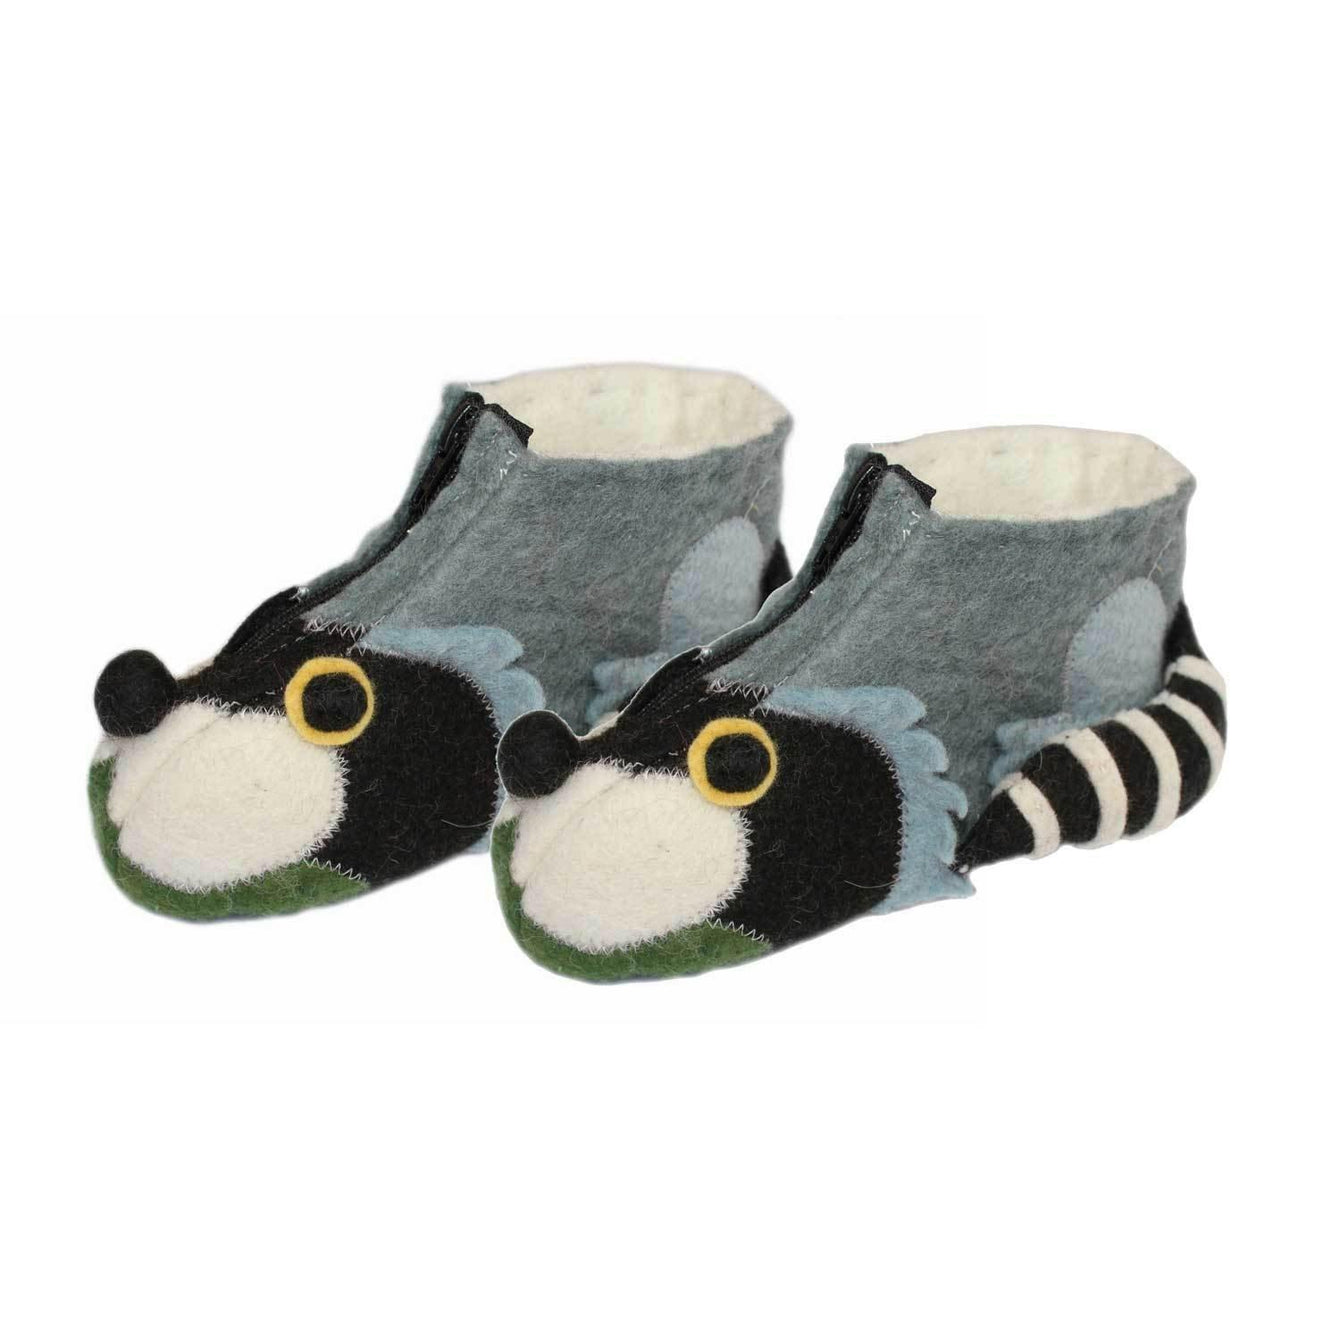 Raccoon Kid Zooties Age 4-5-Kids - Apparel - Slippers-SILK ROAD BAZAAR FAIR TRADE-Peccadilly